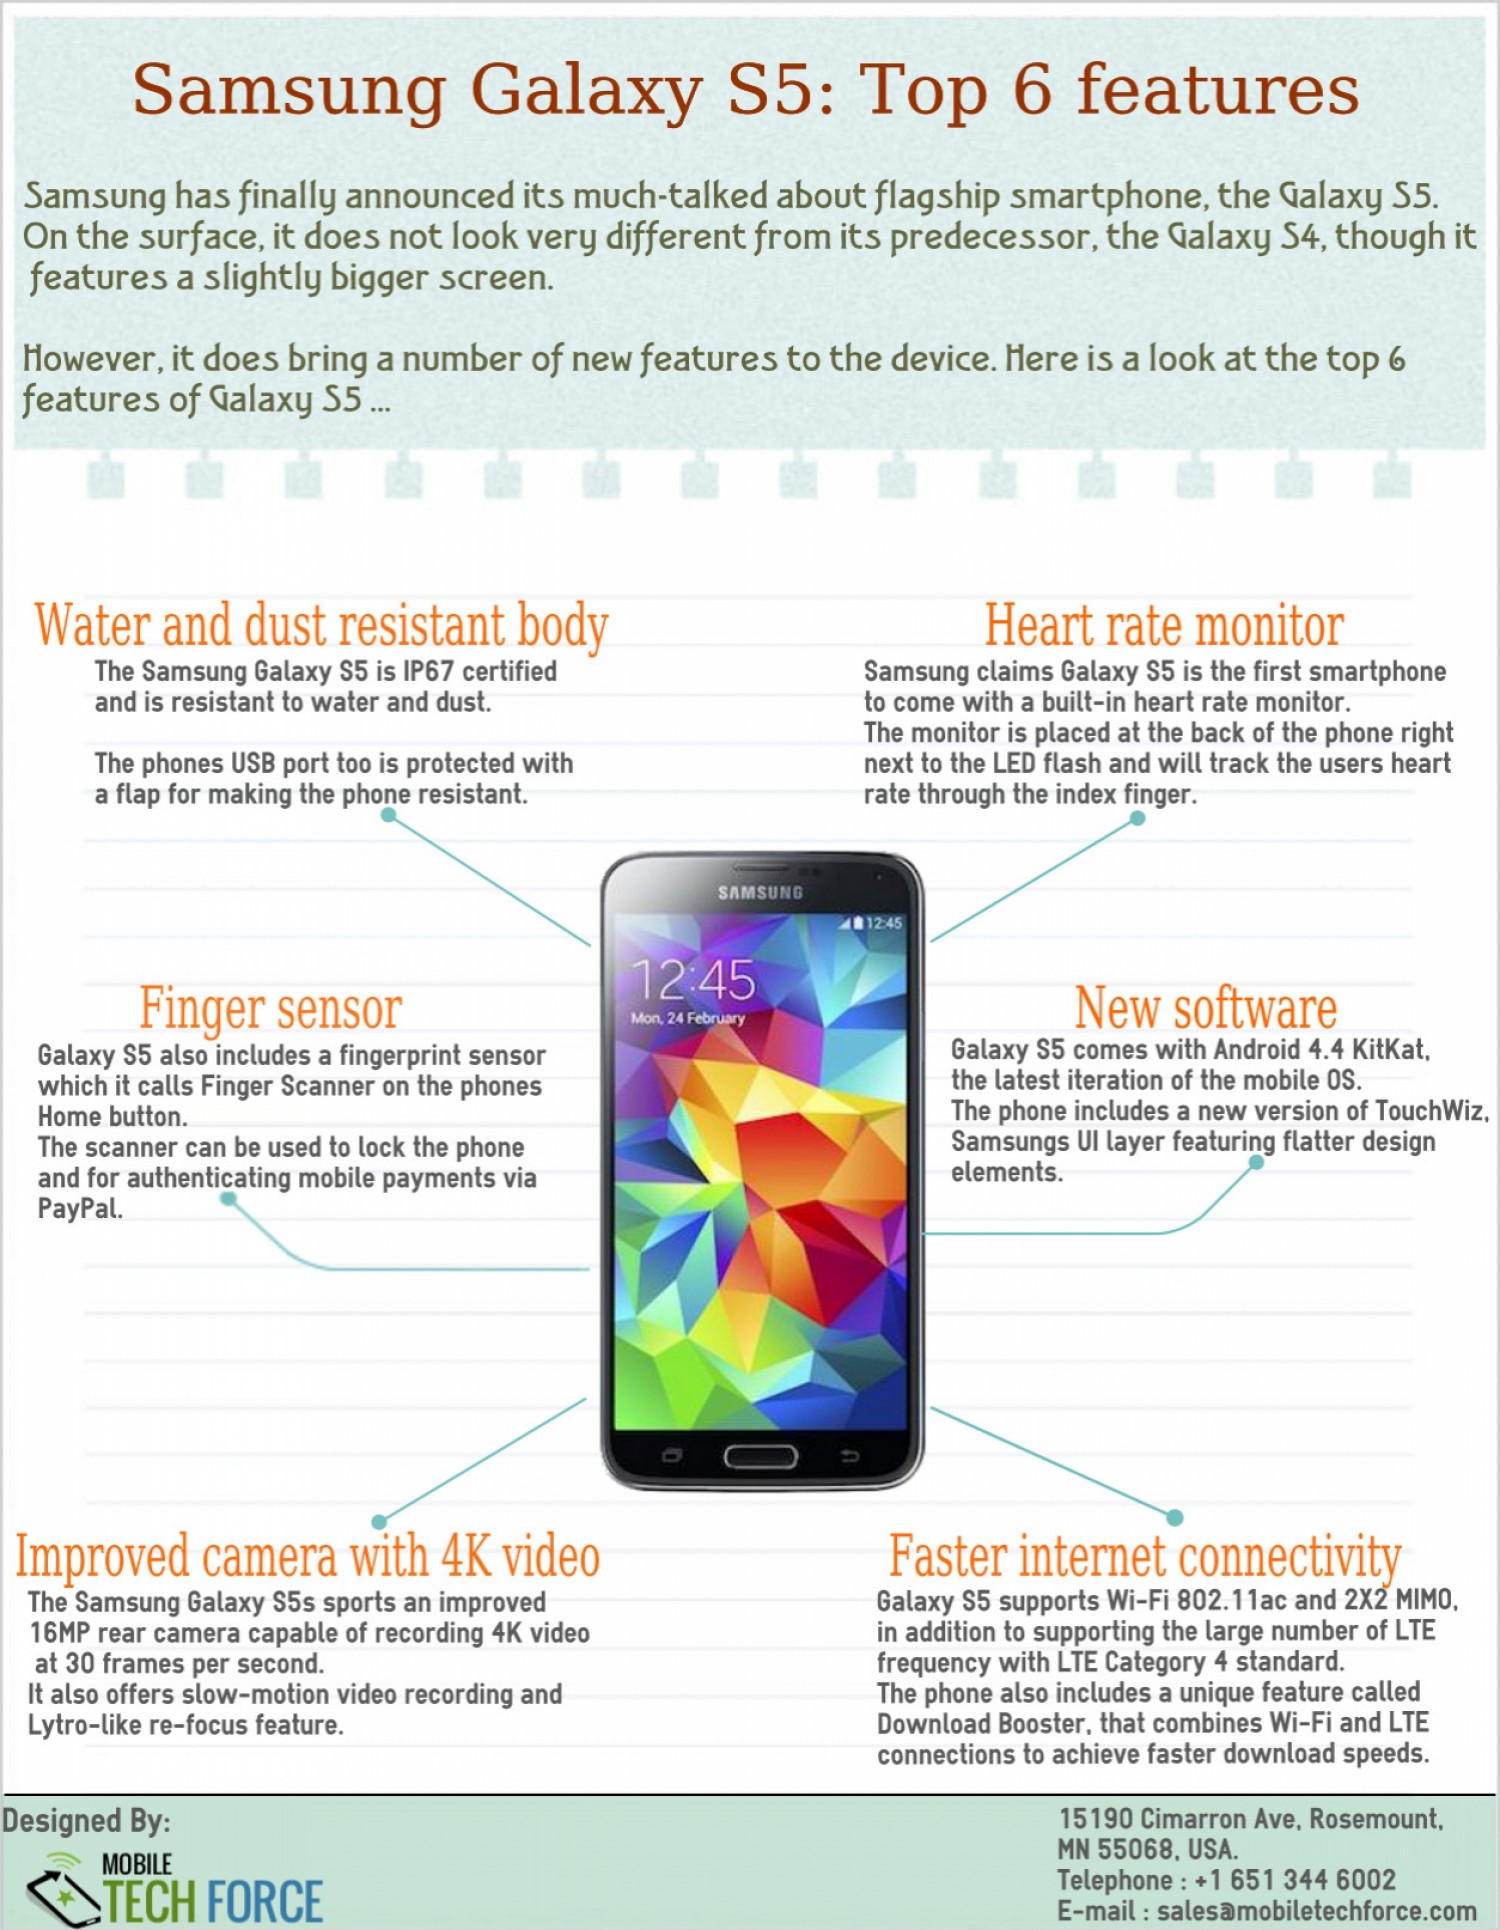 Samsung Galaxy S5: Top 6 Features Infographic